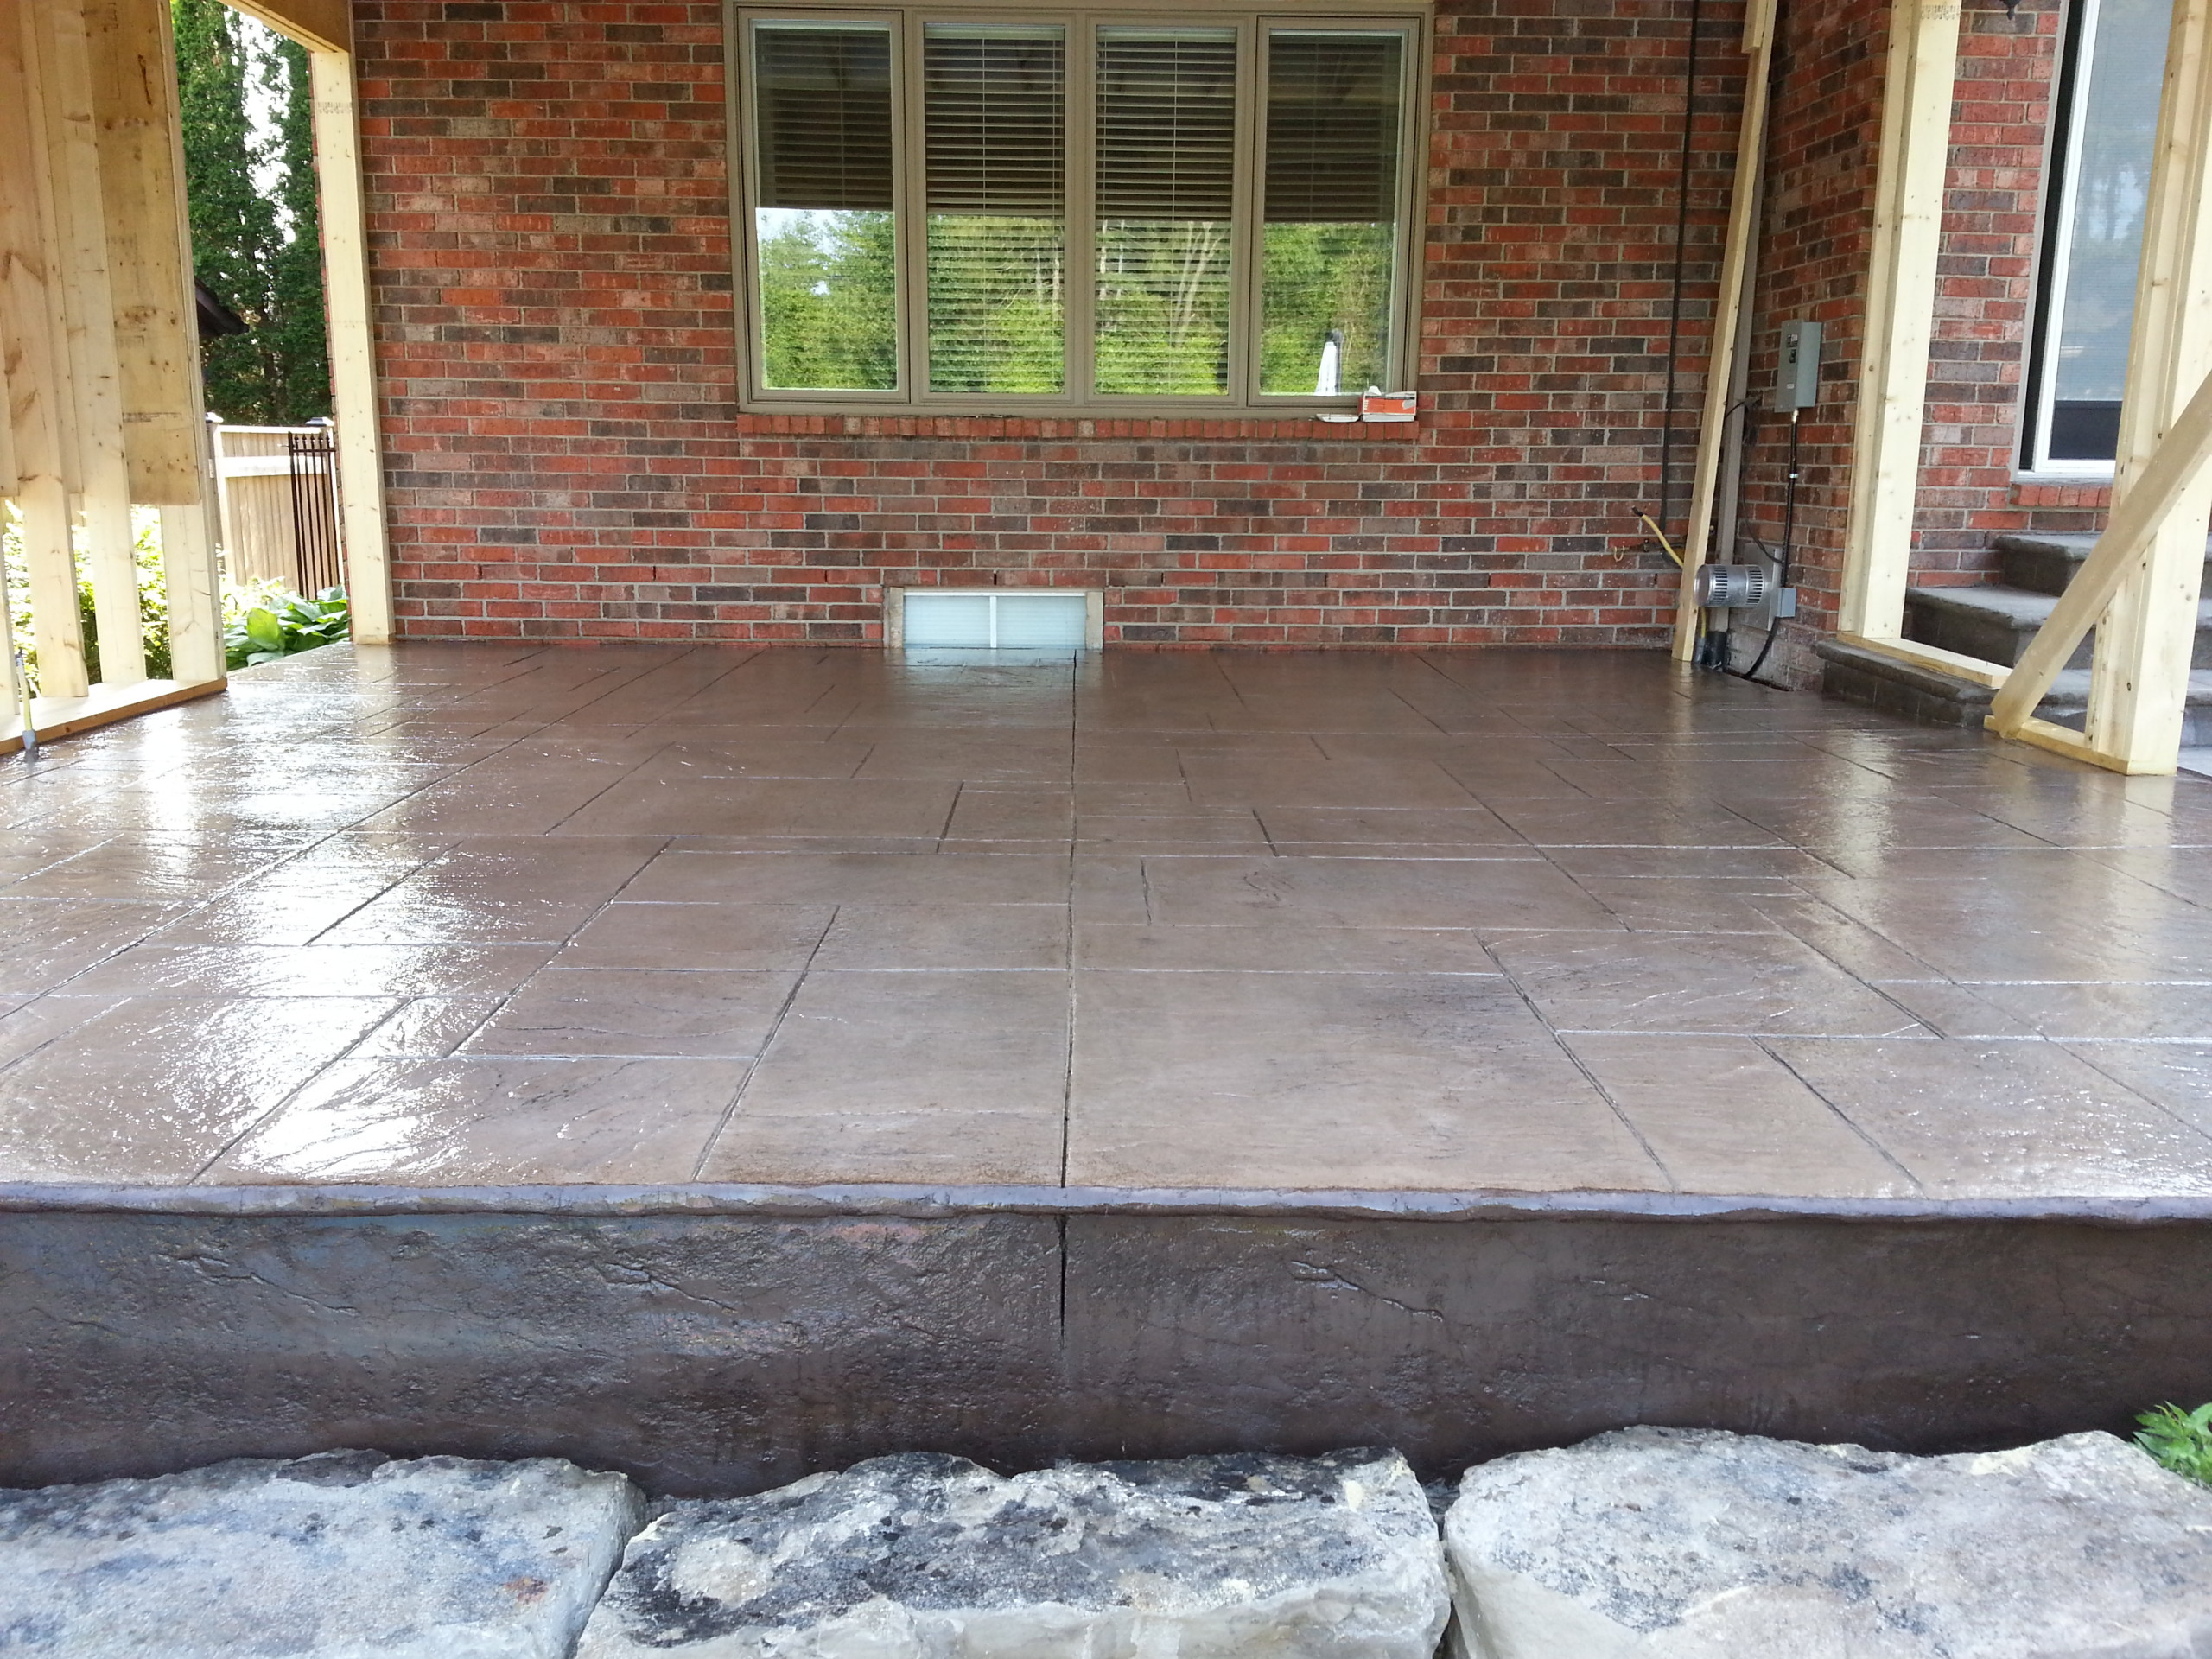 house paving and window